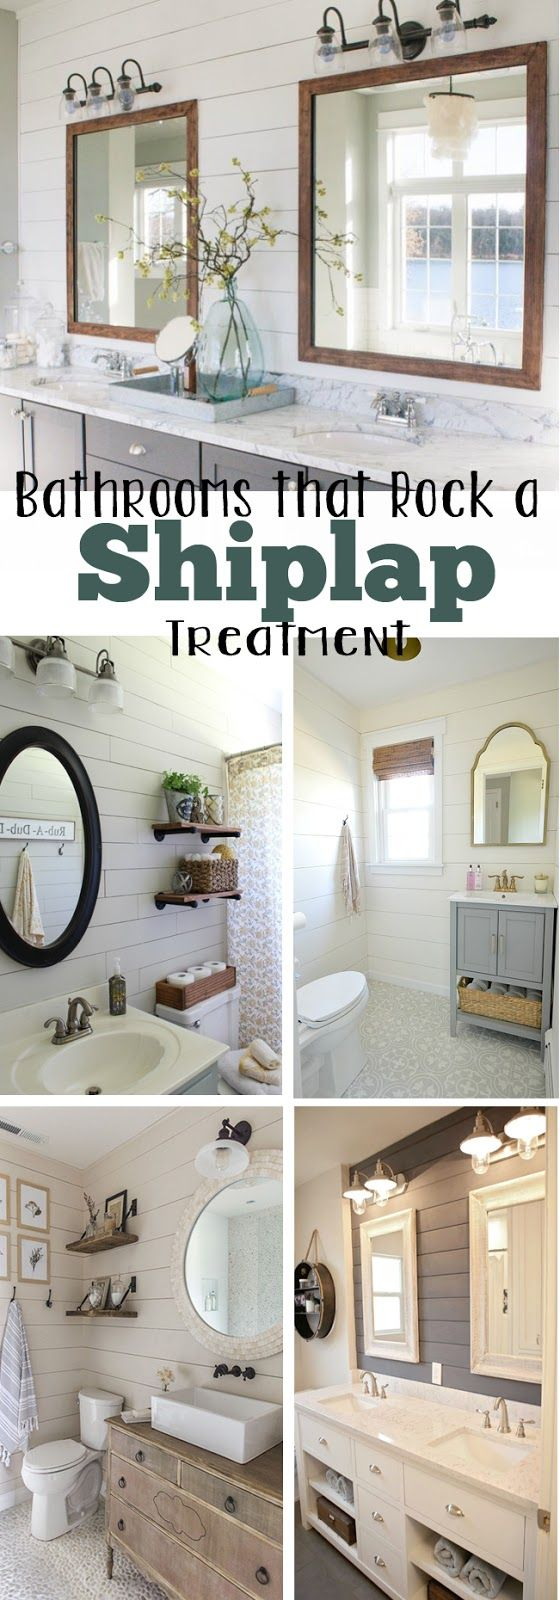 best 20 farmhouse style bathrooms ideas on pinterest farm style 10 bathrooms that rock a shiplap treatment shiplap bathroomdownstairs bathroommaster bathroomssmall